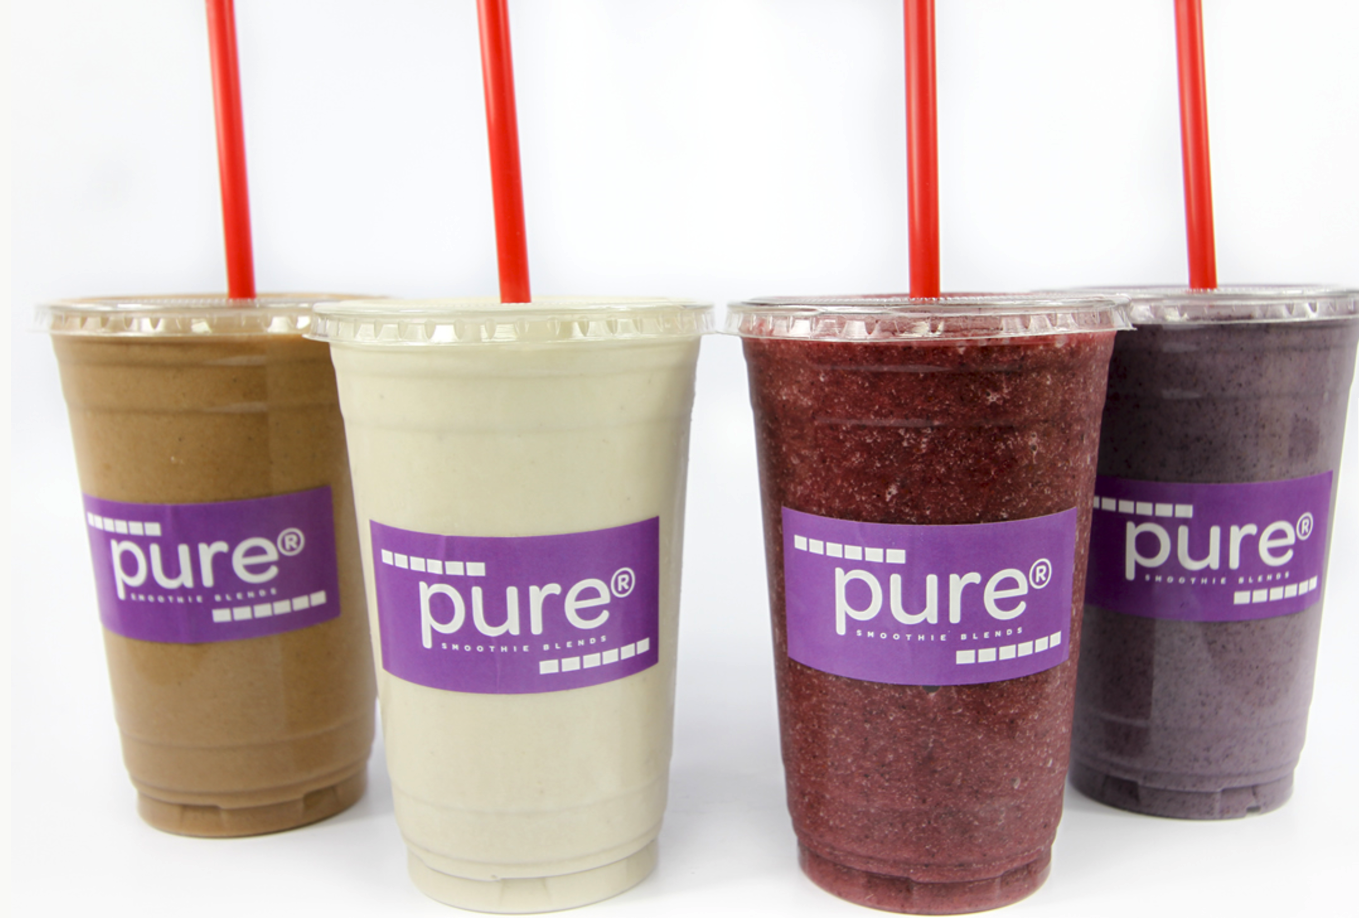 YOU'VE NEVER HAD A SMOOTHIE LIKE OURS